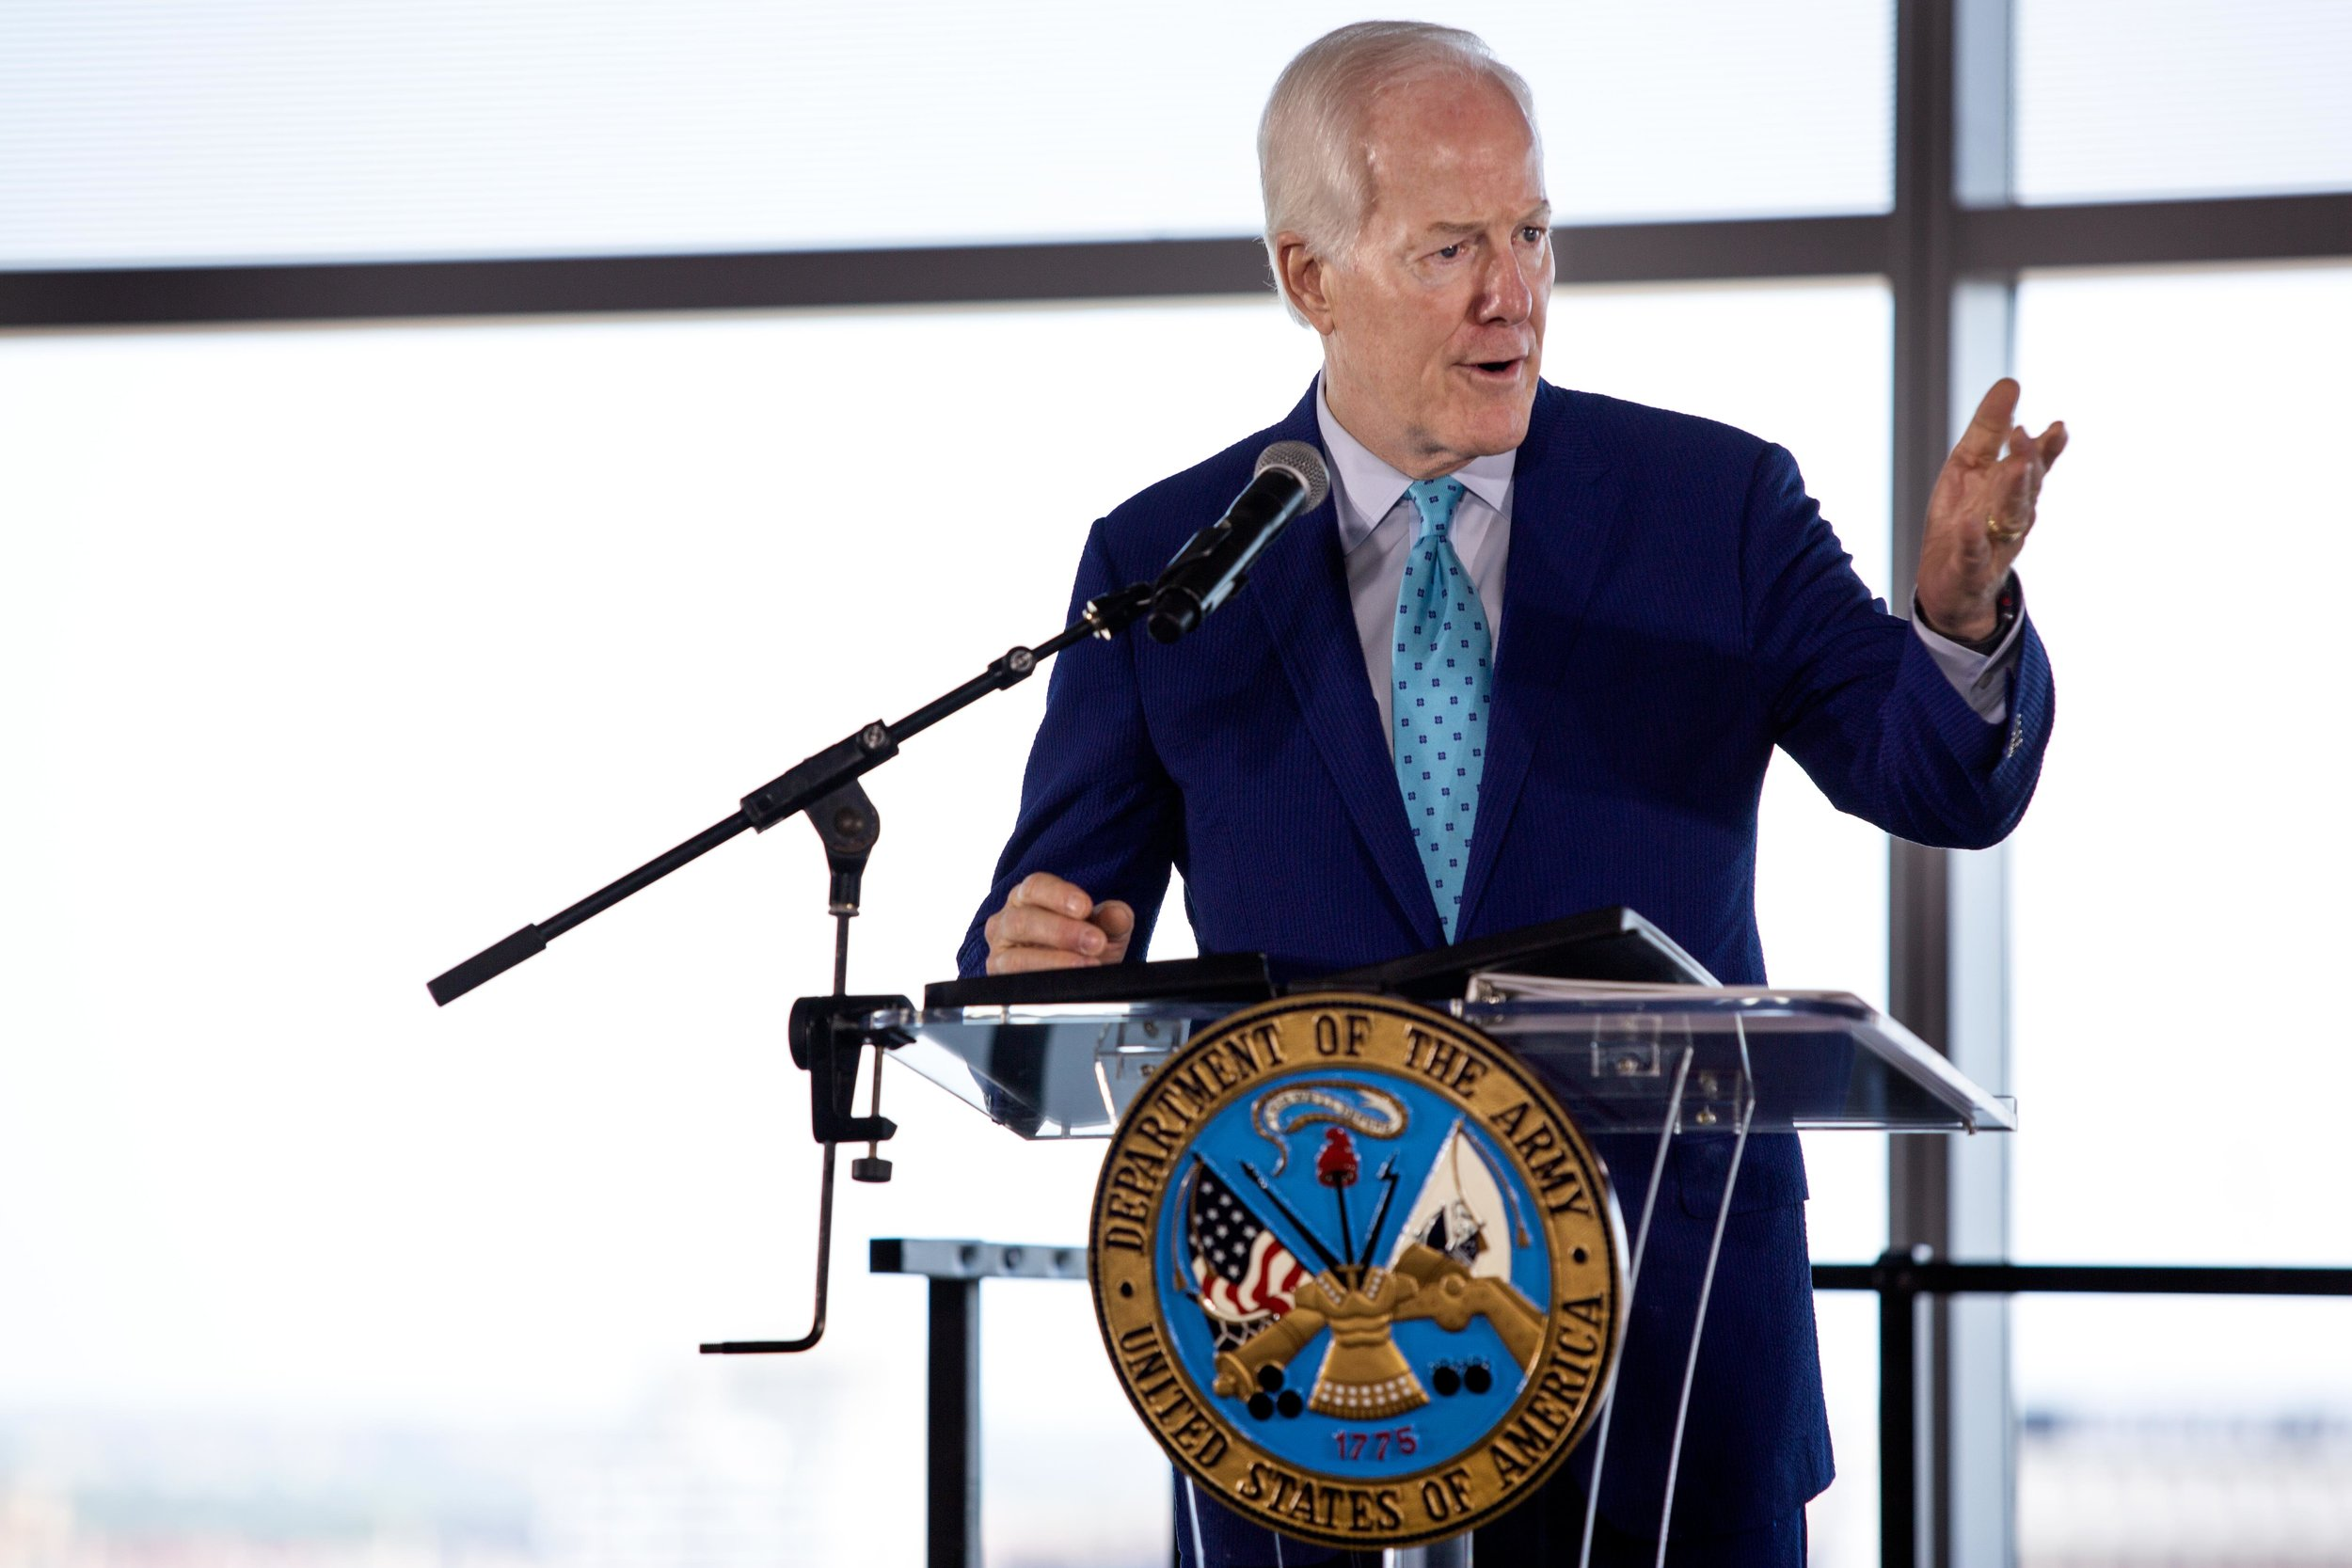 AUSTIN, TX. Aug 24, 2018. Sen. John Cornyn speaks at the launch of the U.S Army Futures Command in downtown Austin. Montinique Monroe for KUT News